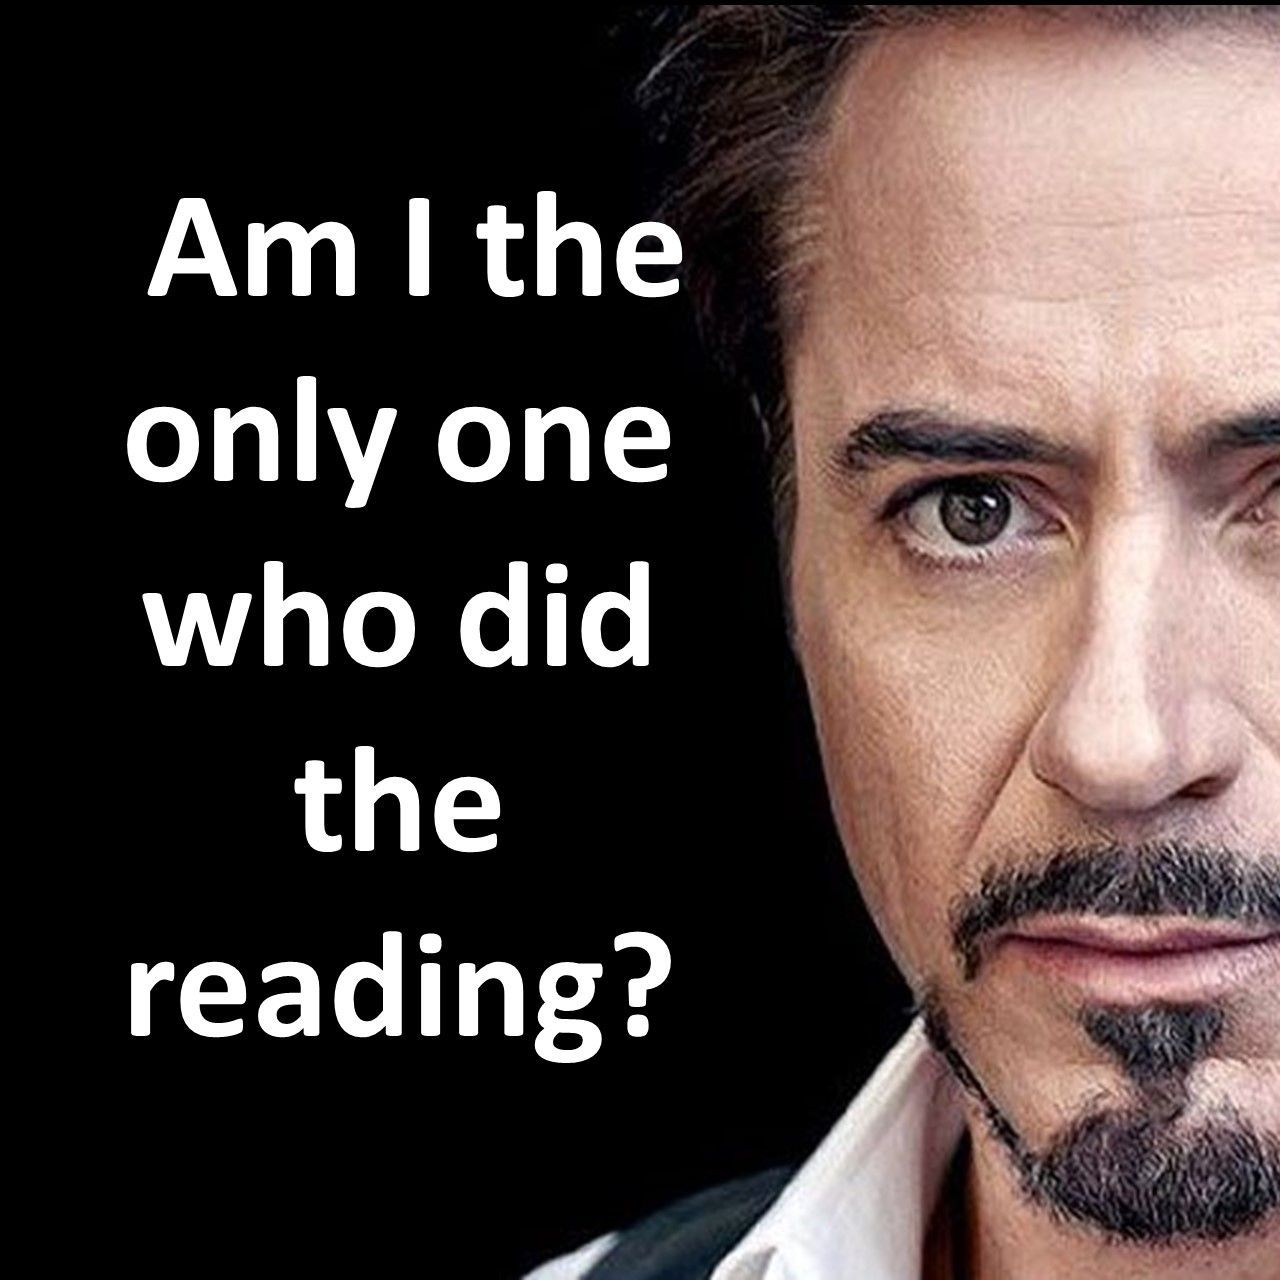 Check Out Video Tony Stark Funny Lines Top Iron Man Quotes Tonystark Ironman Funnyquotes Avengers Marvelquotes Iron Man Quotes Tony Stark Funny Quotes